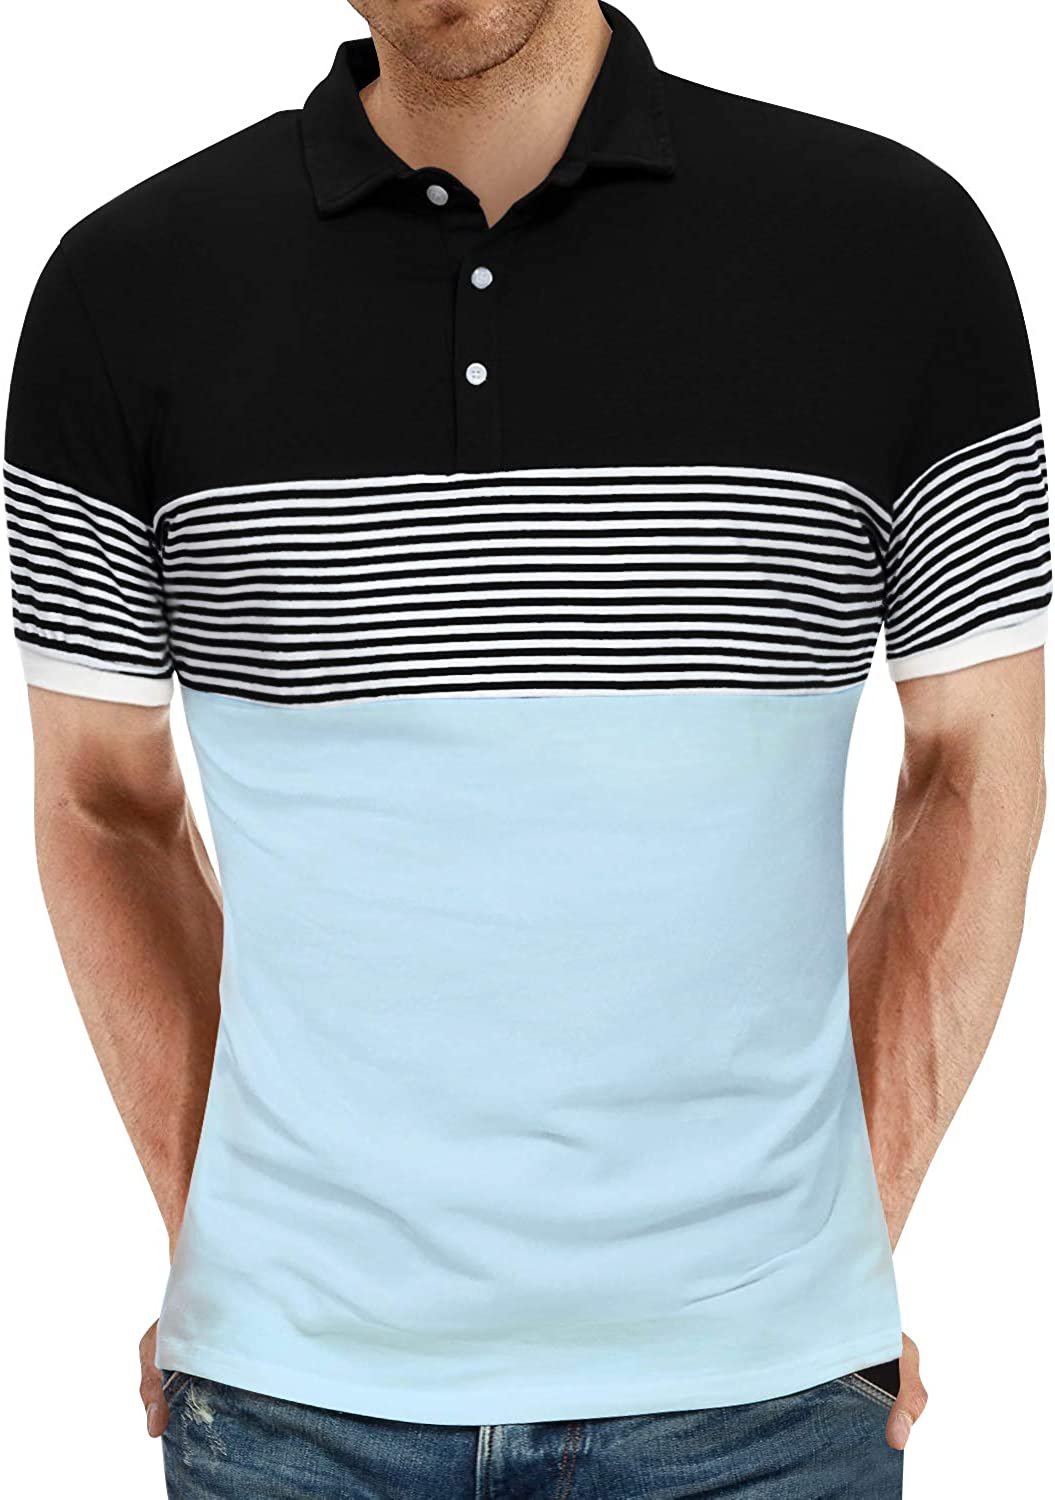 YTD Men's Short Sleeve Polo Shirts Casual Slim Fit Contrast Color Stitching Stripe Cotton Shirts